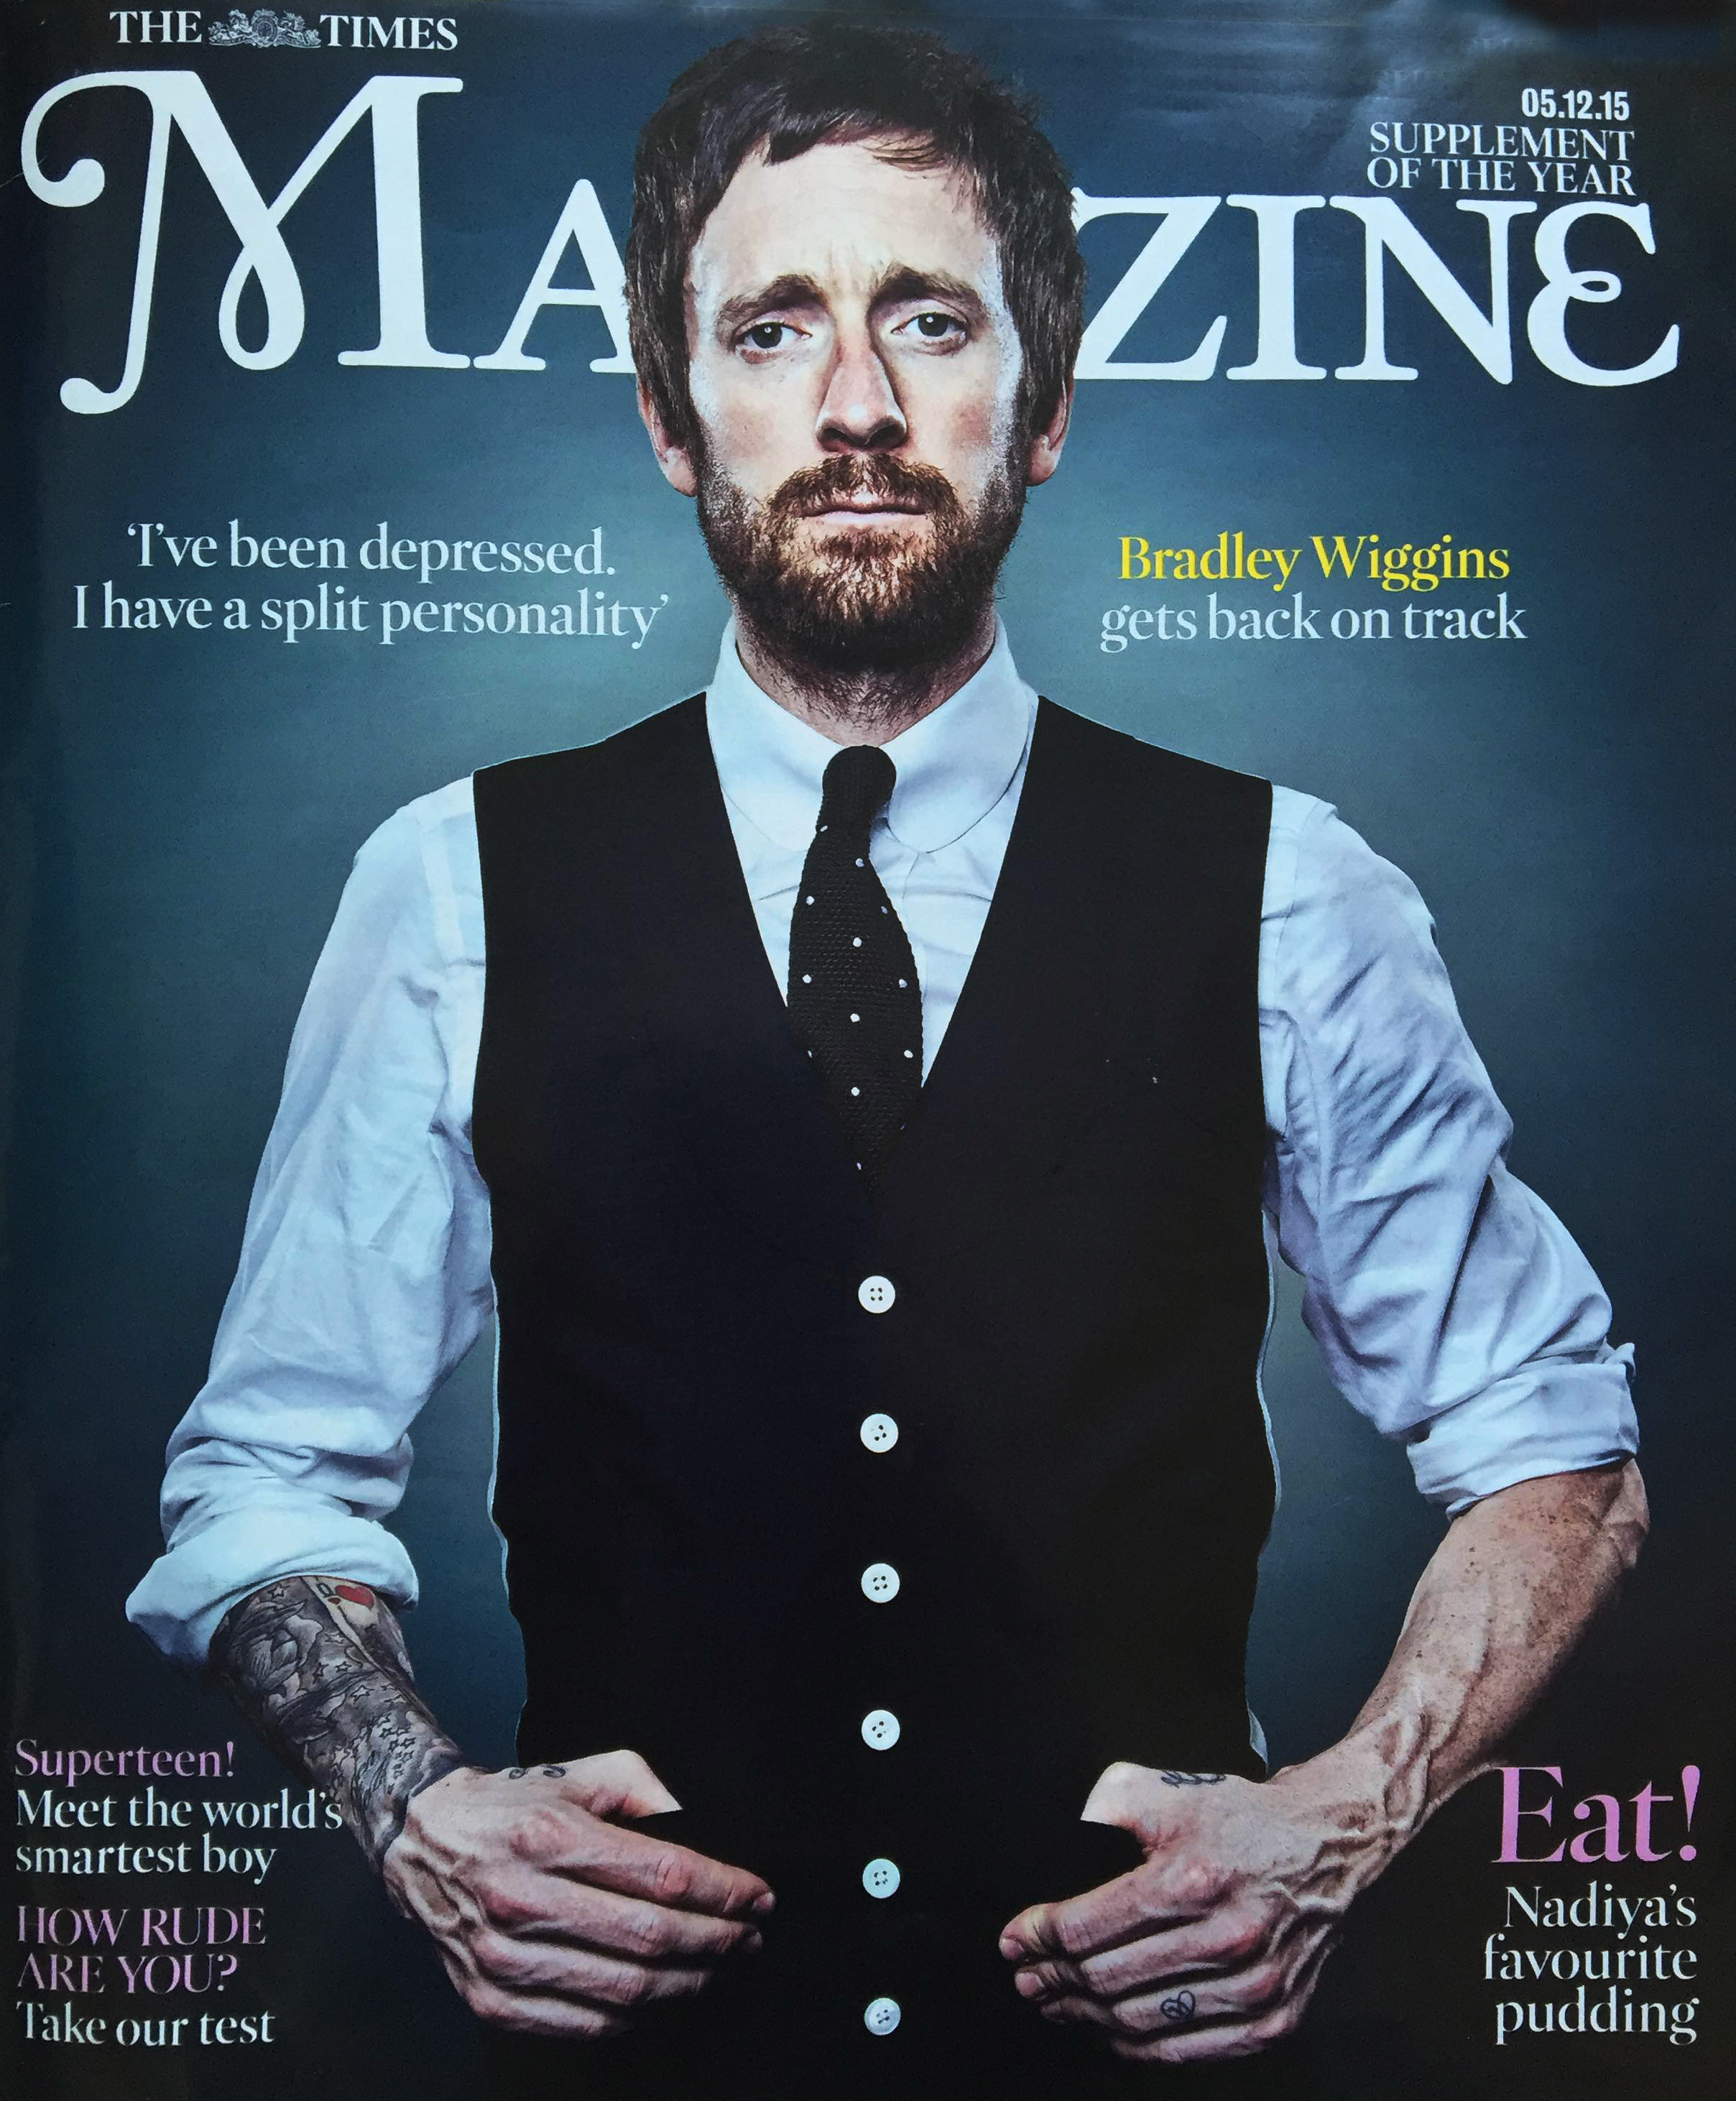 times mag cover.jpg